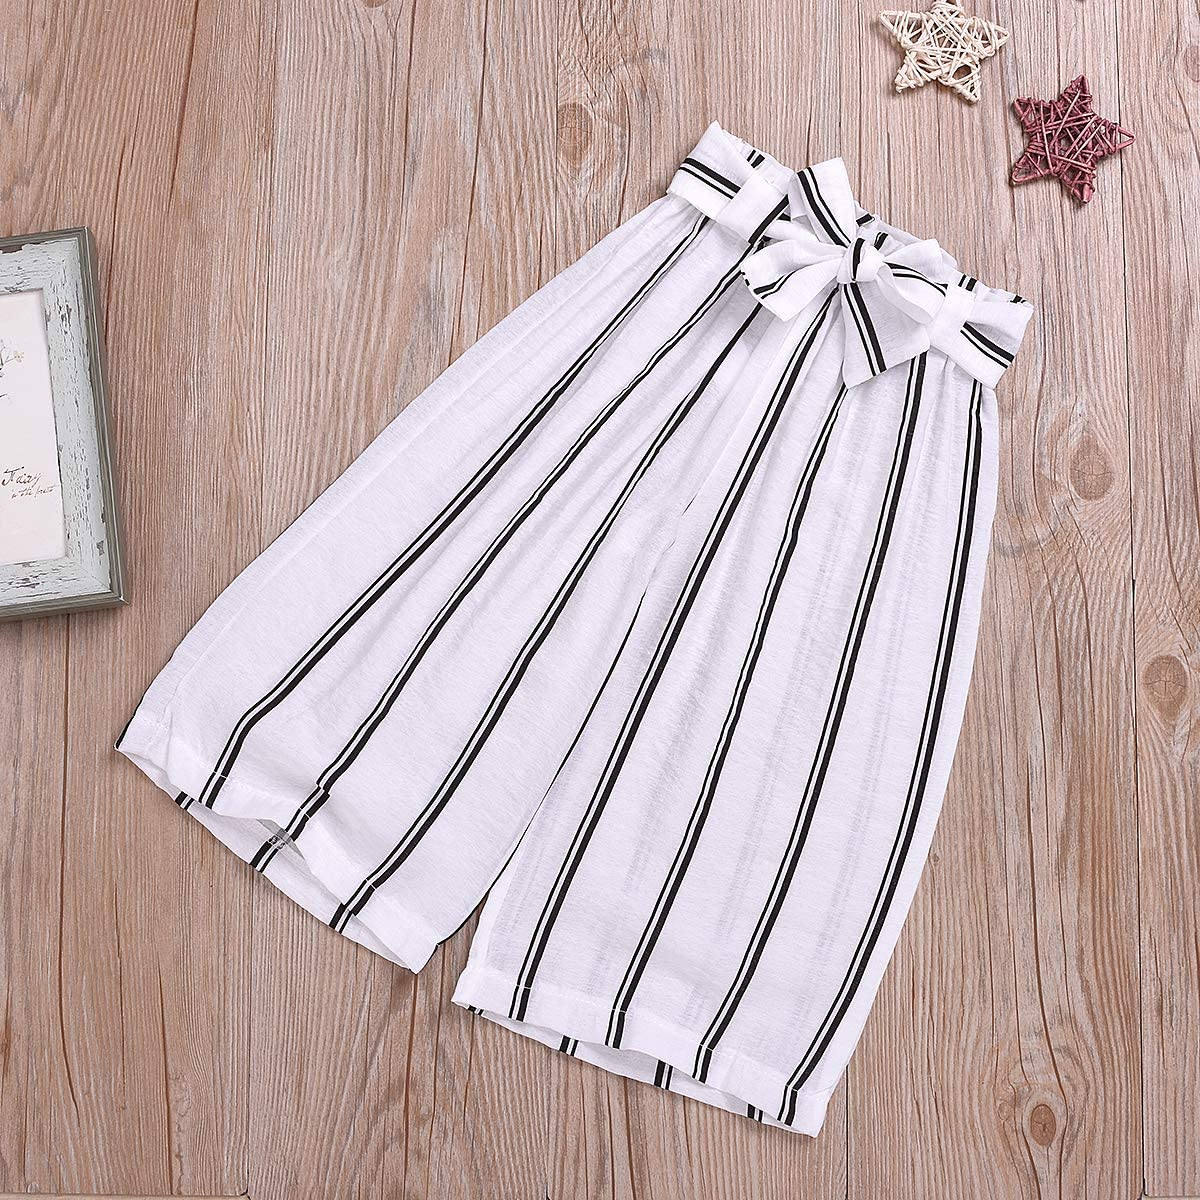 Striped Maxi Skirts Dress Autumn Clothing Set Kids Girl Boho Outfits Fly Sleeve Shirts Top